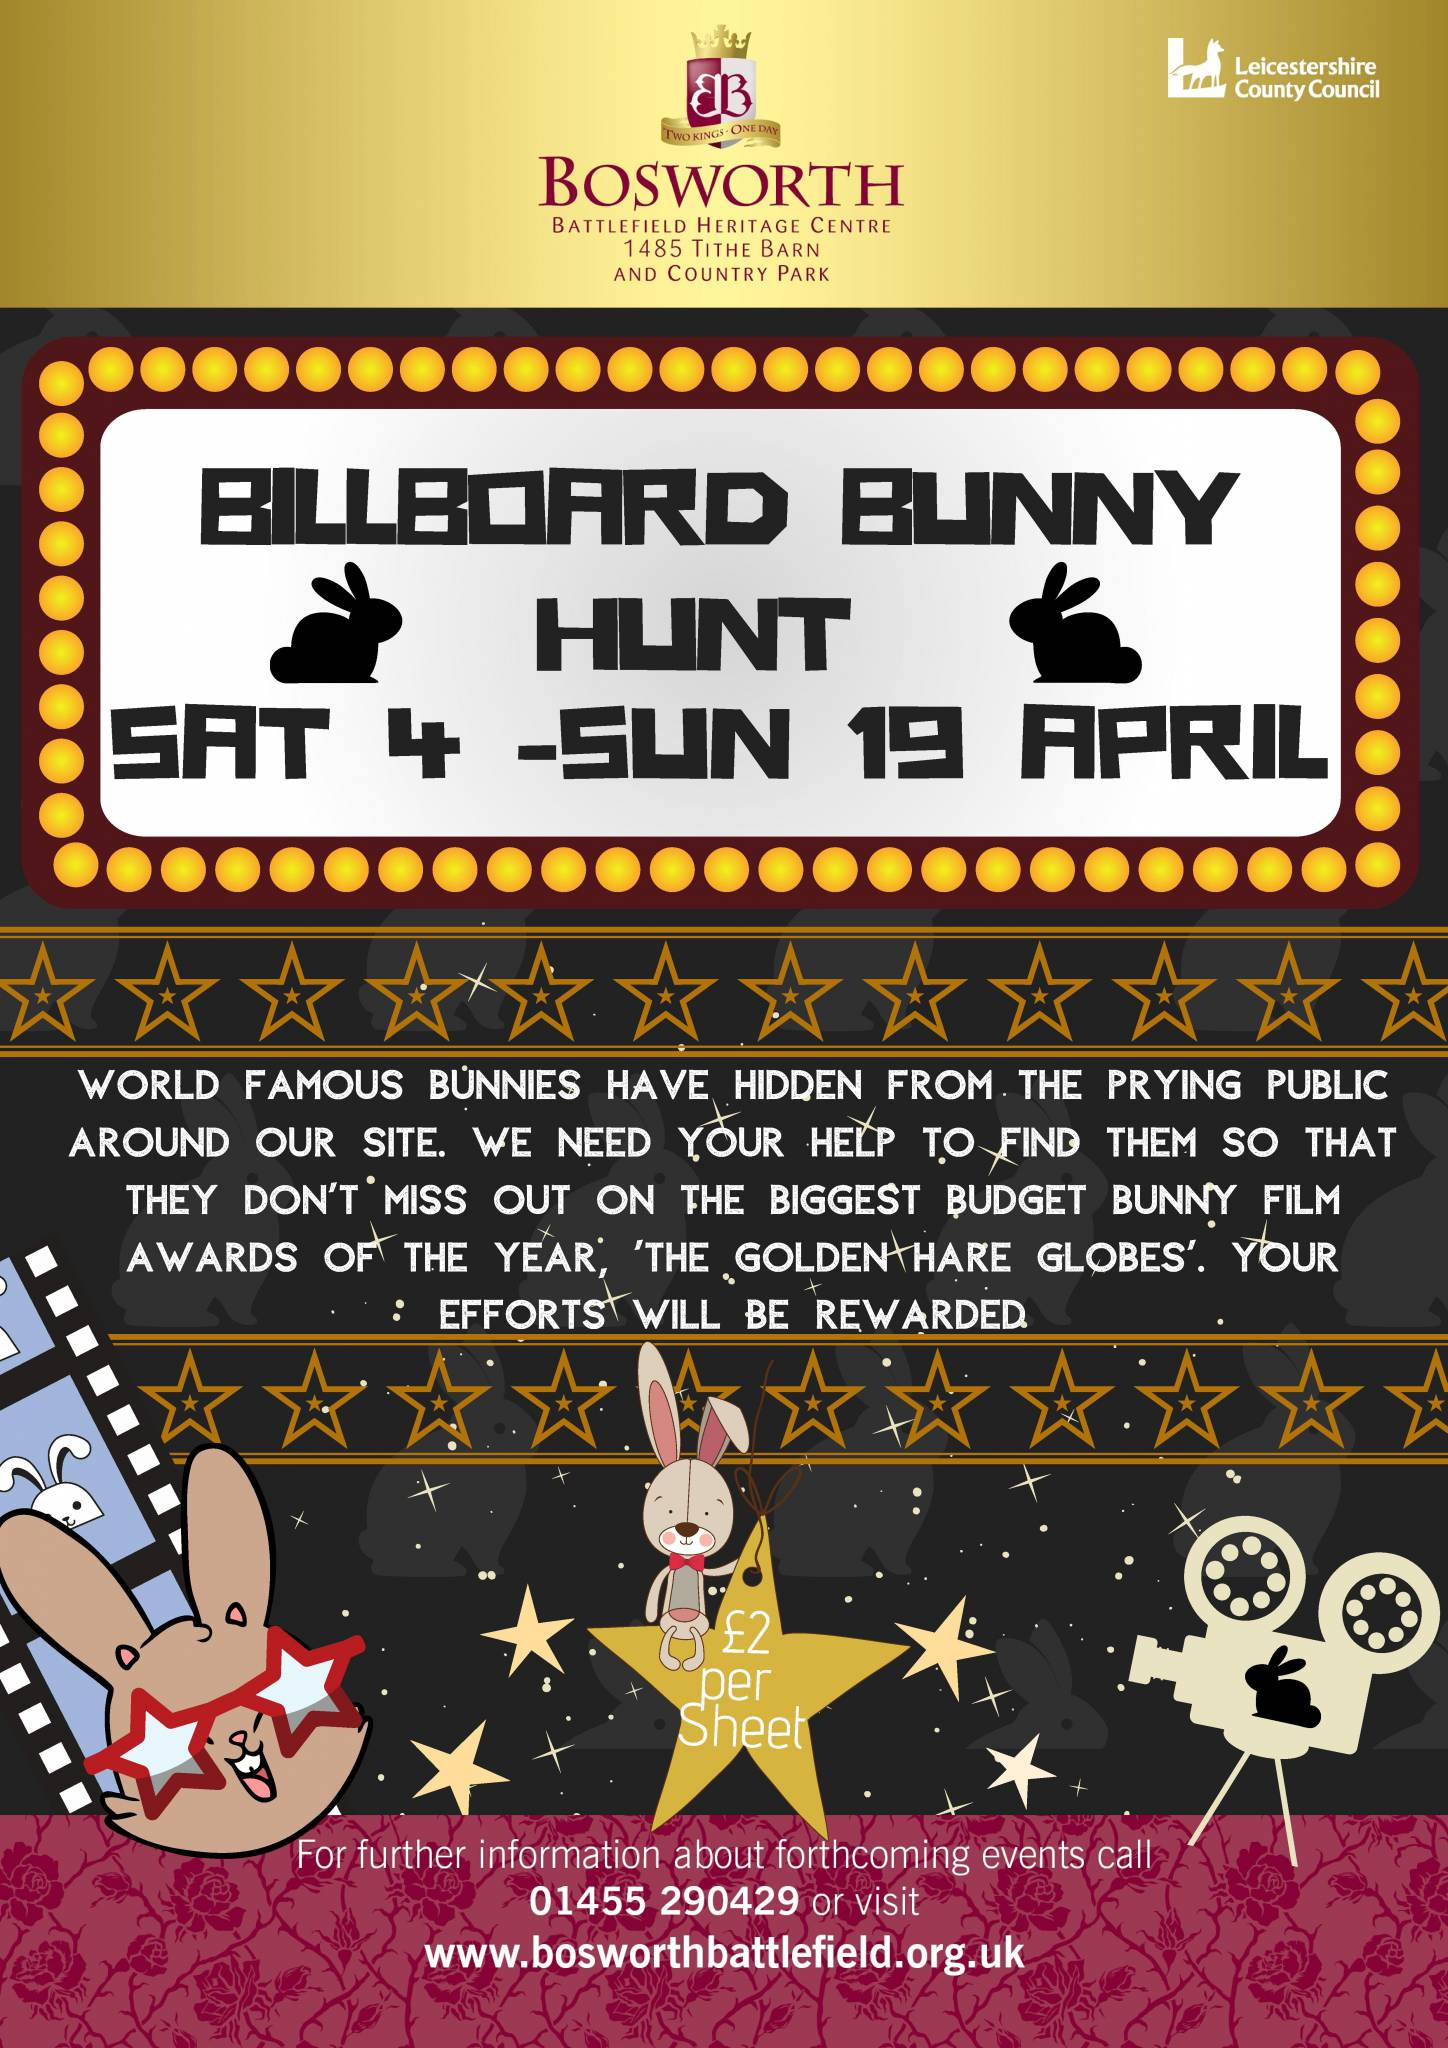 BillBoard Bunny Hunt - POSTPONED